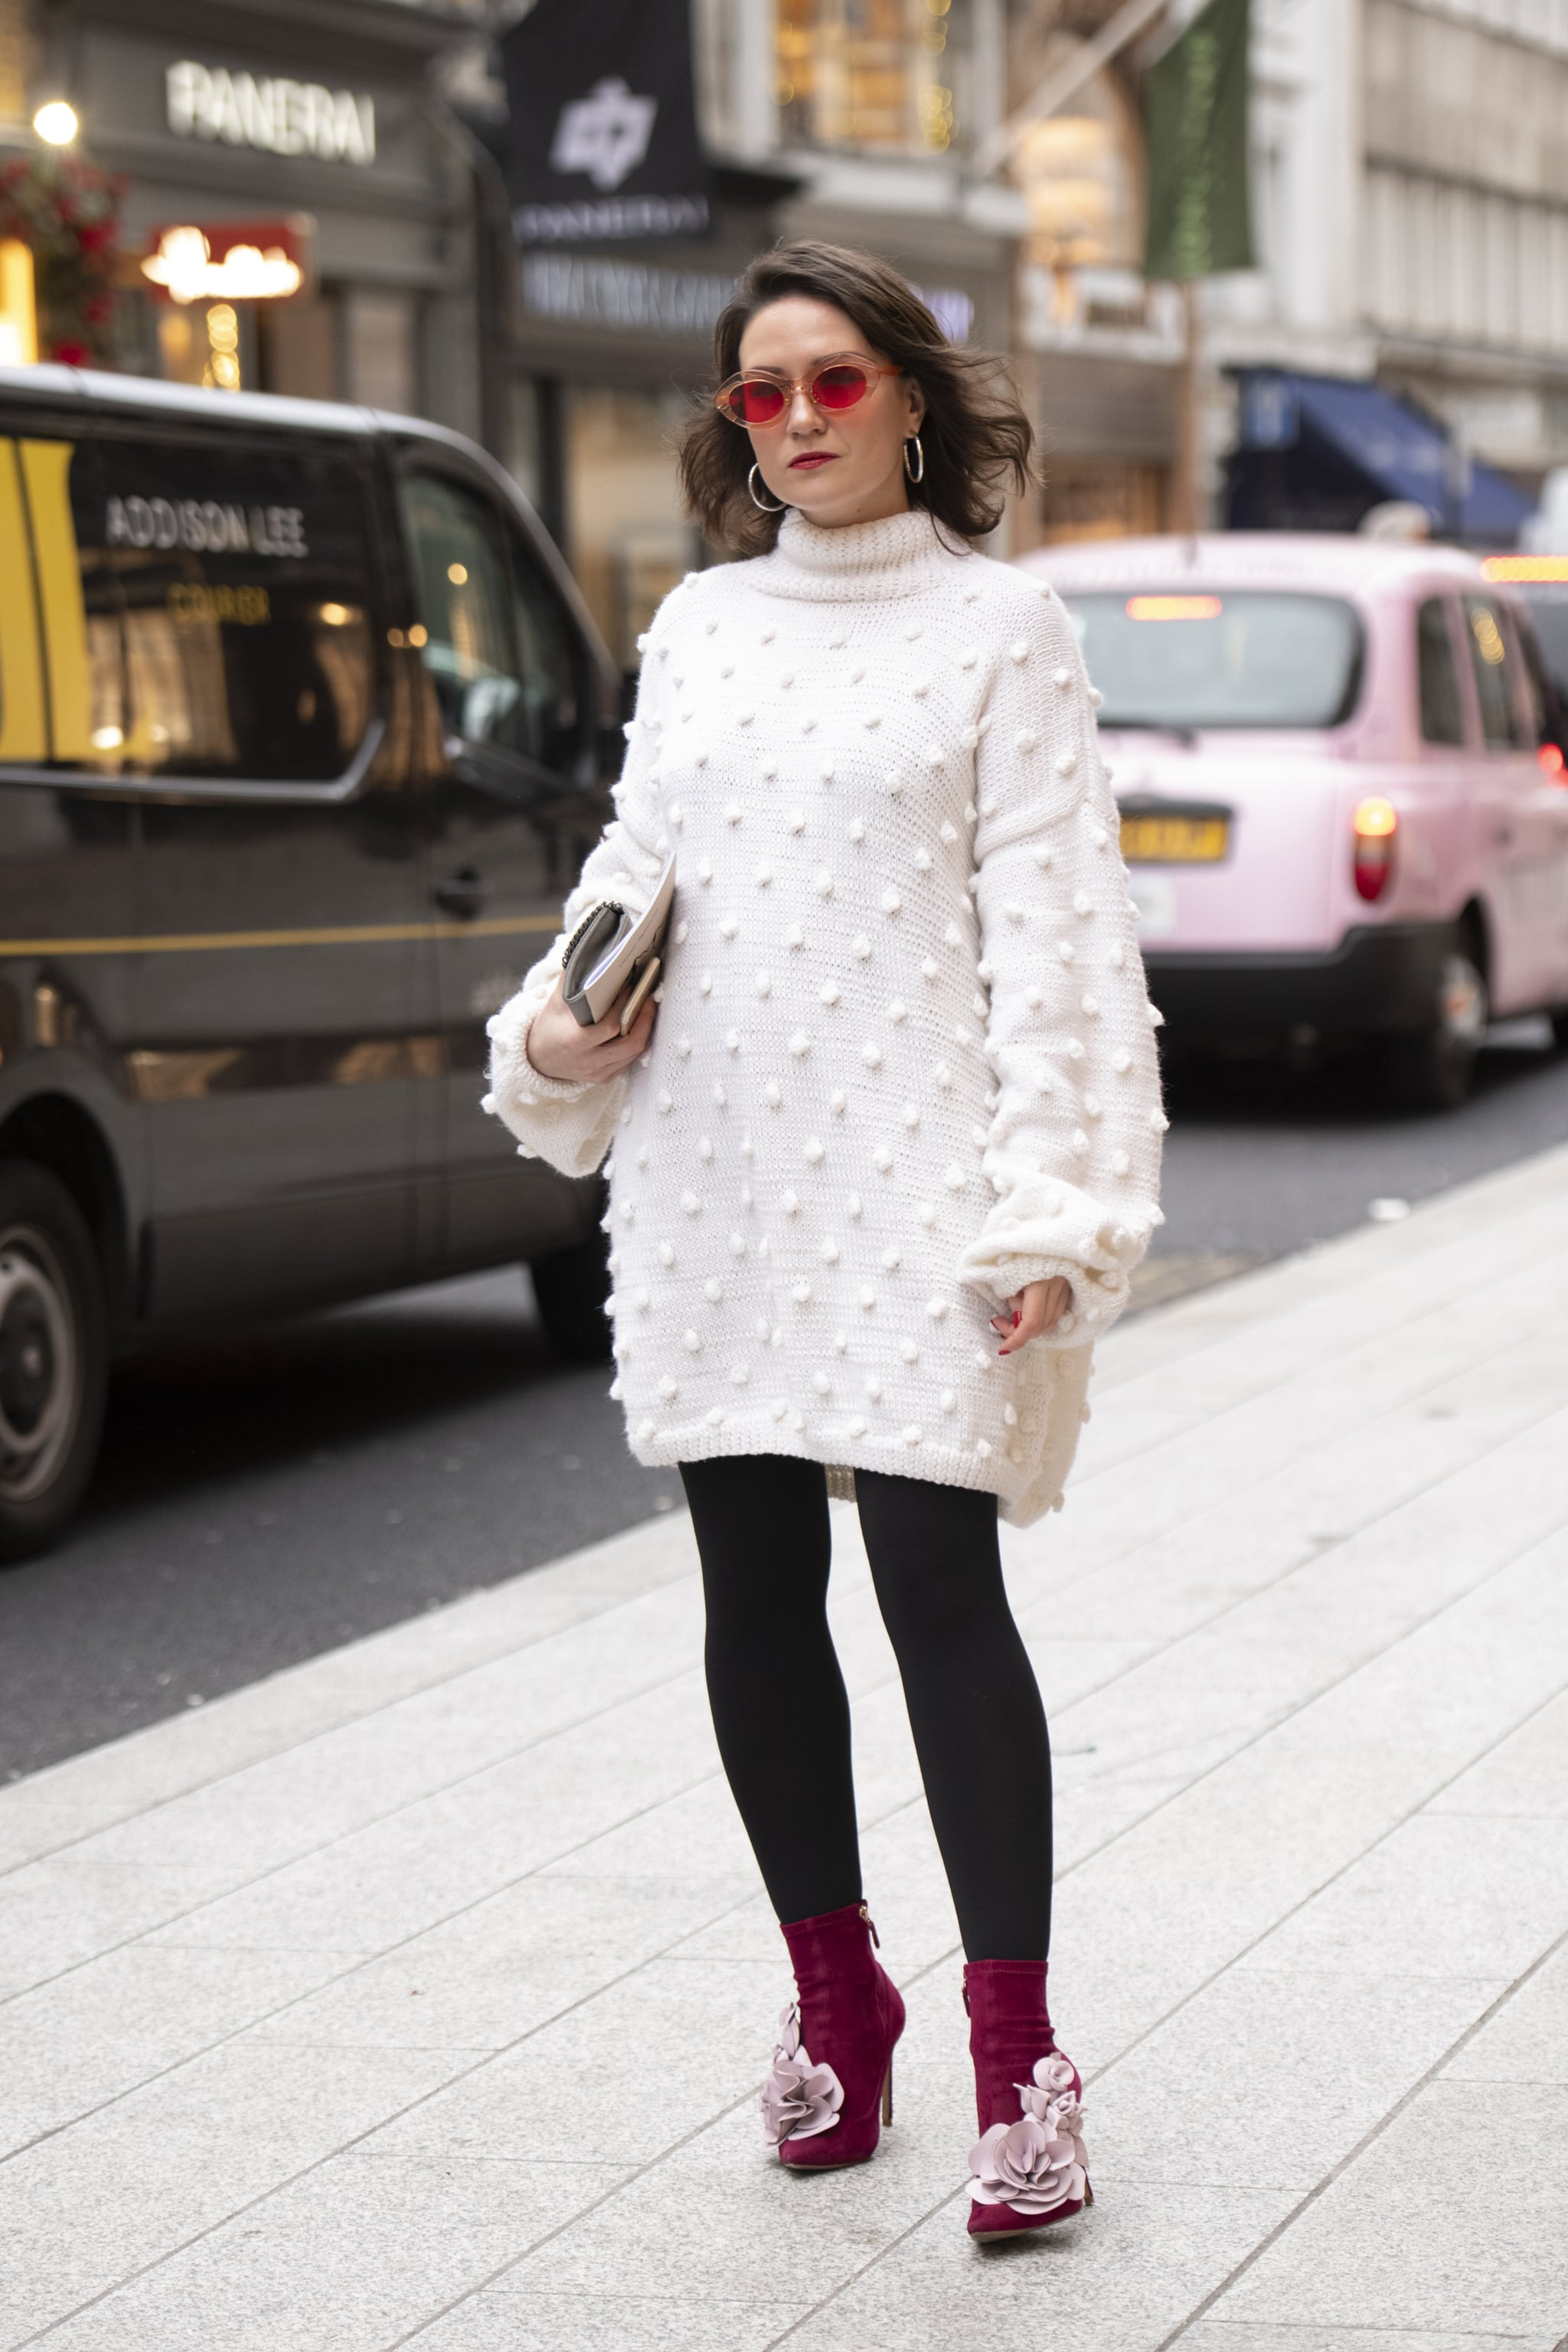 Layer Under a Sweater Dress and Finish With Sock Boots